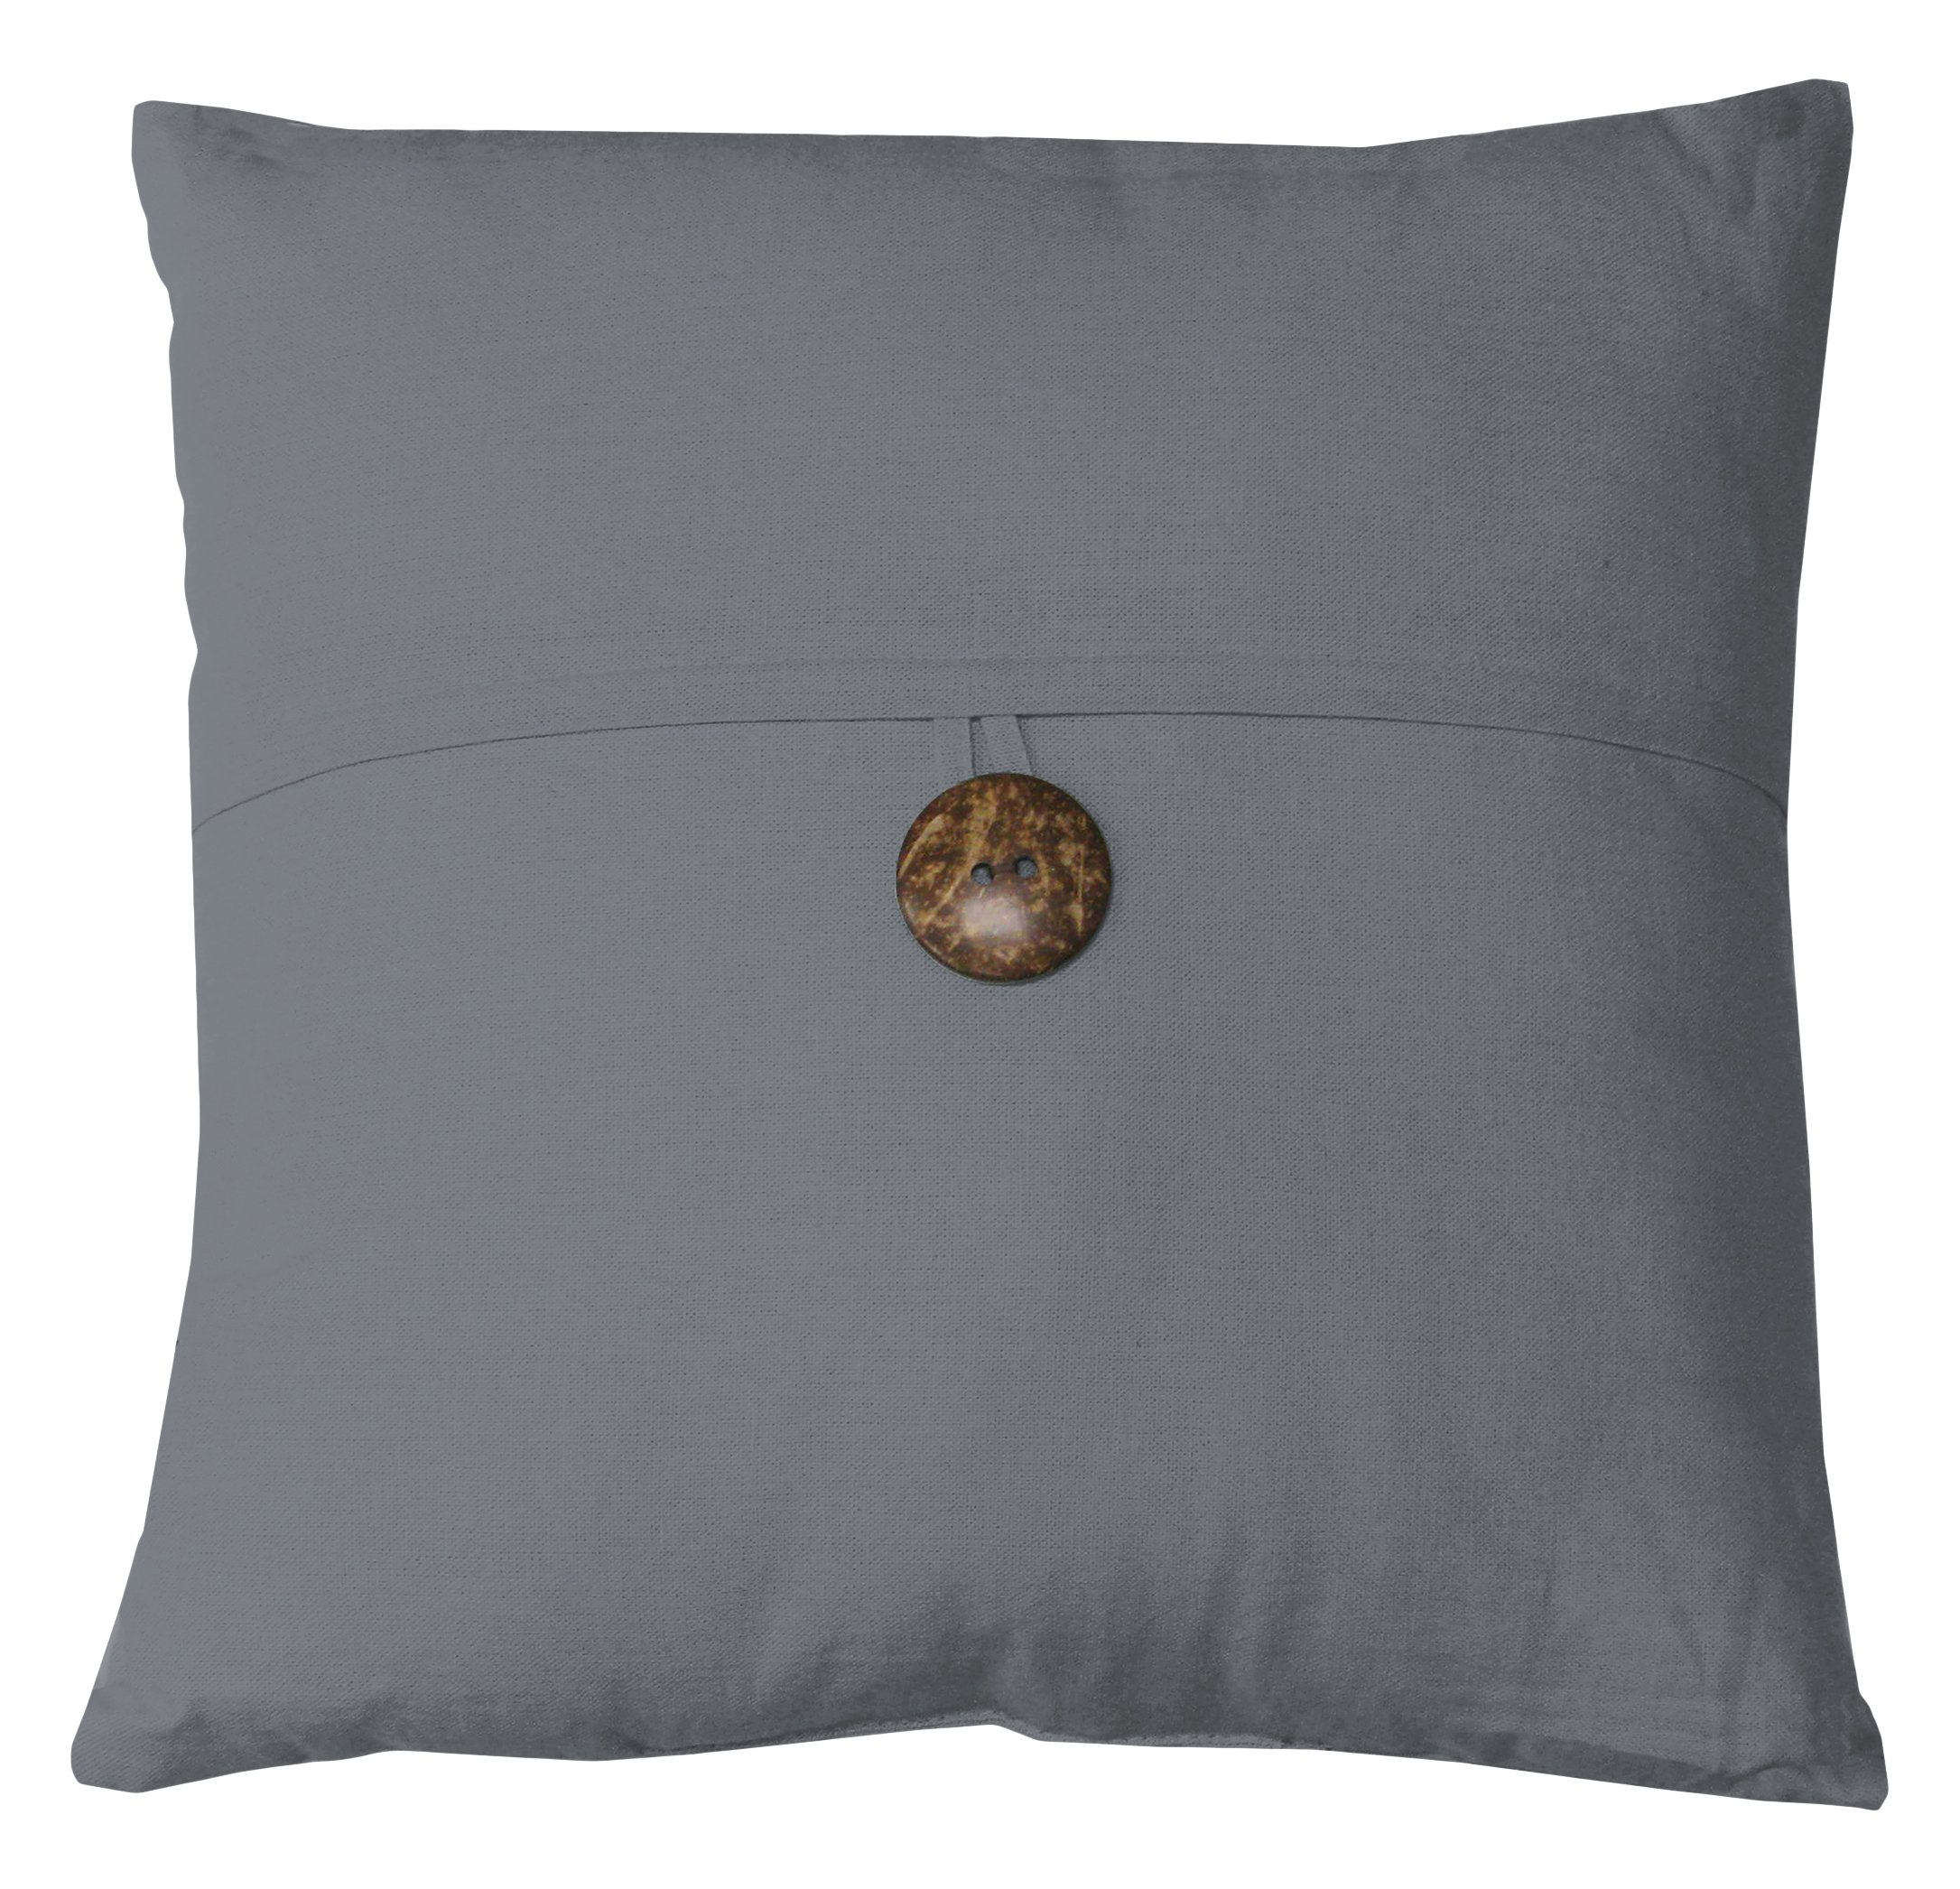 Elrene Home Fashions 026865880052 Decorative Linen Solid Couch/Sofa/Bed Cushion Pillow, 18'' x 18'', Gray